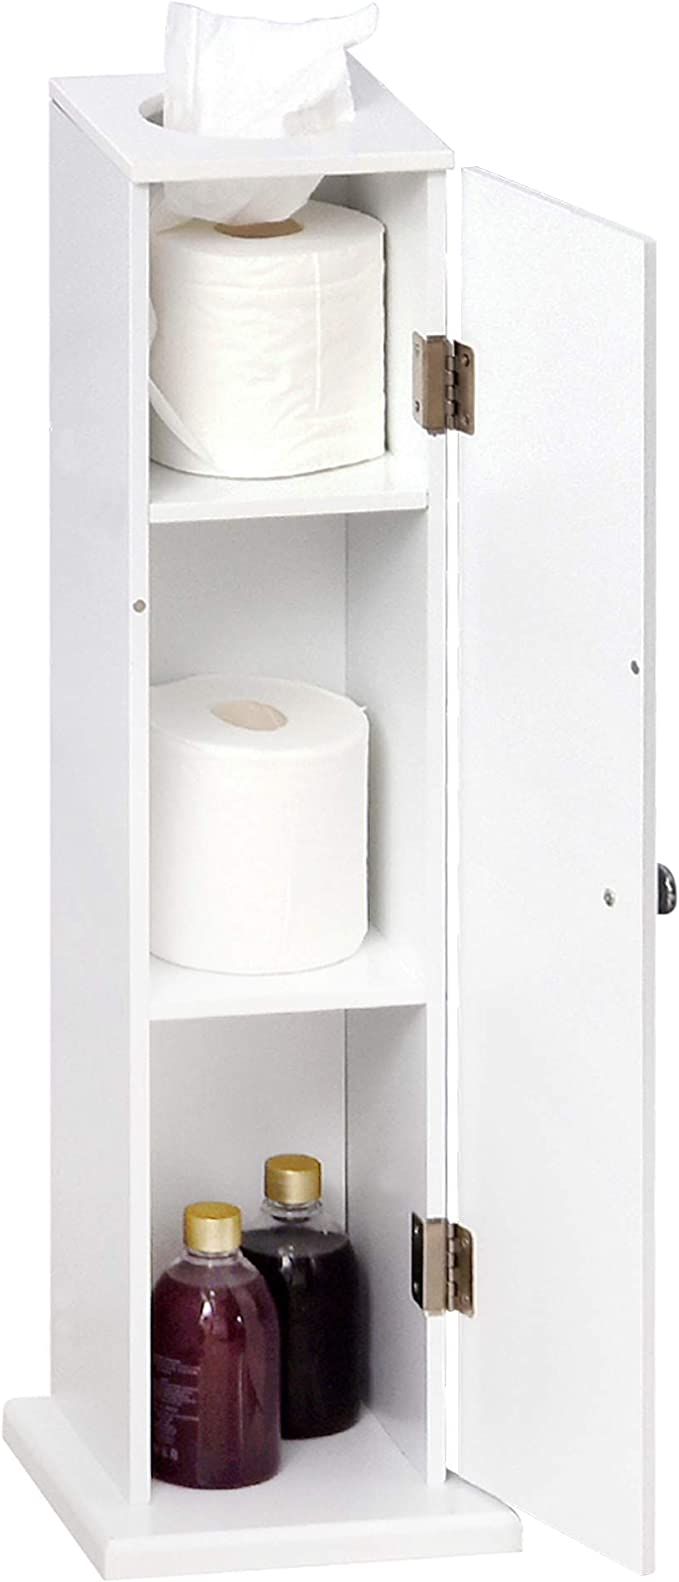 Homcom Small Bathroom Corner Floor Cabinet With Doors And Shelves Thin Toilet Paper Storage Bathroom Organizer For Paper Shampoo White Home Kitchen